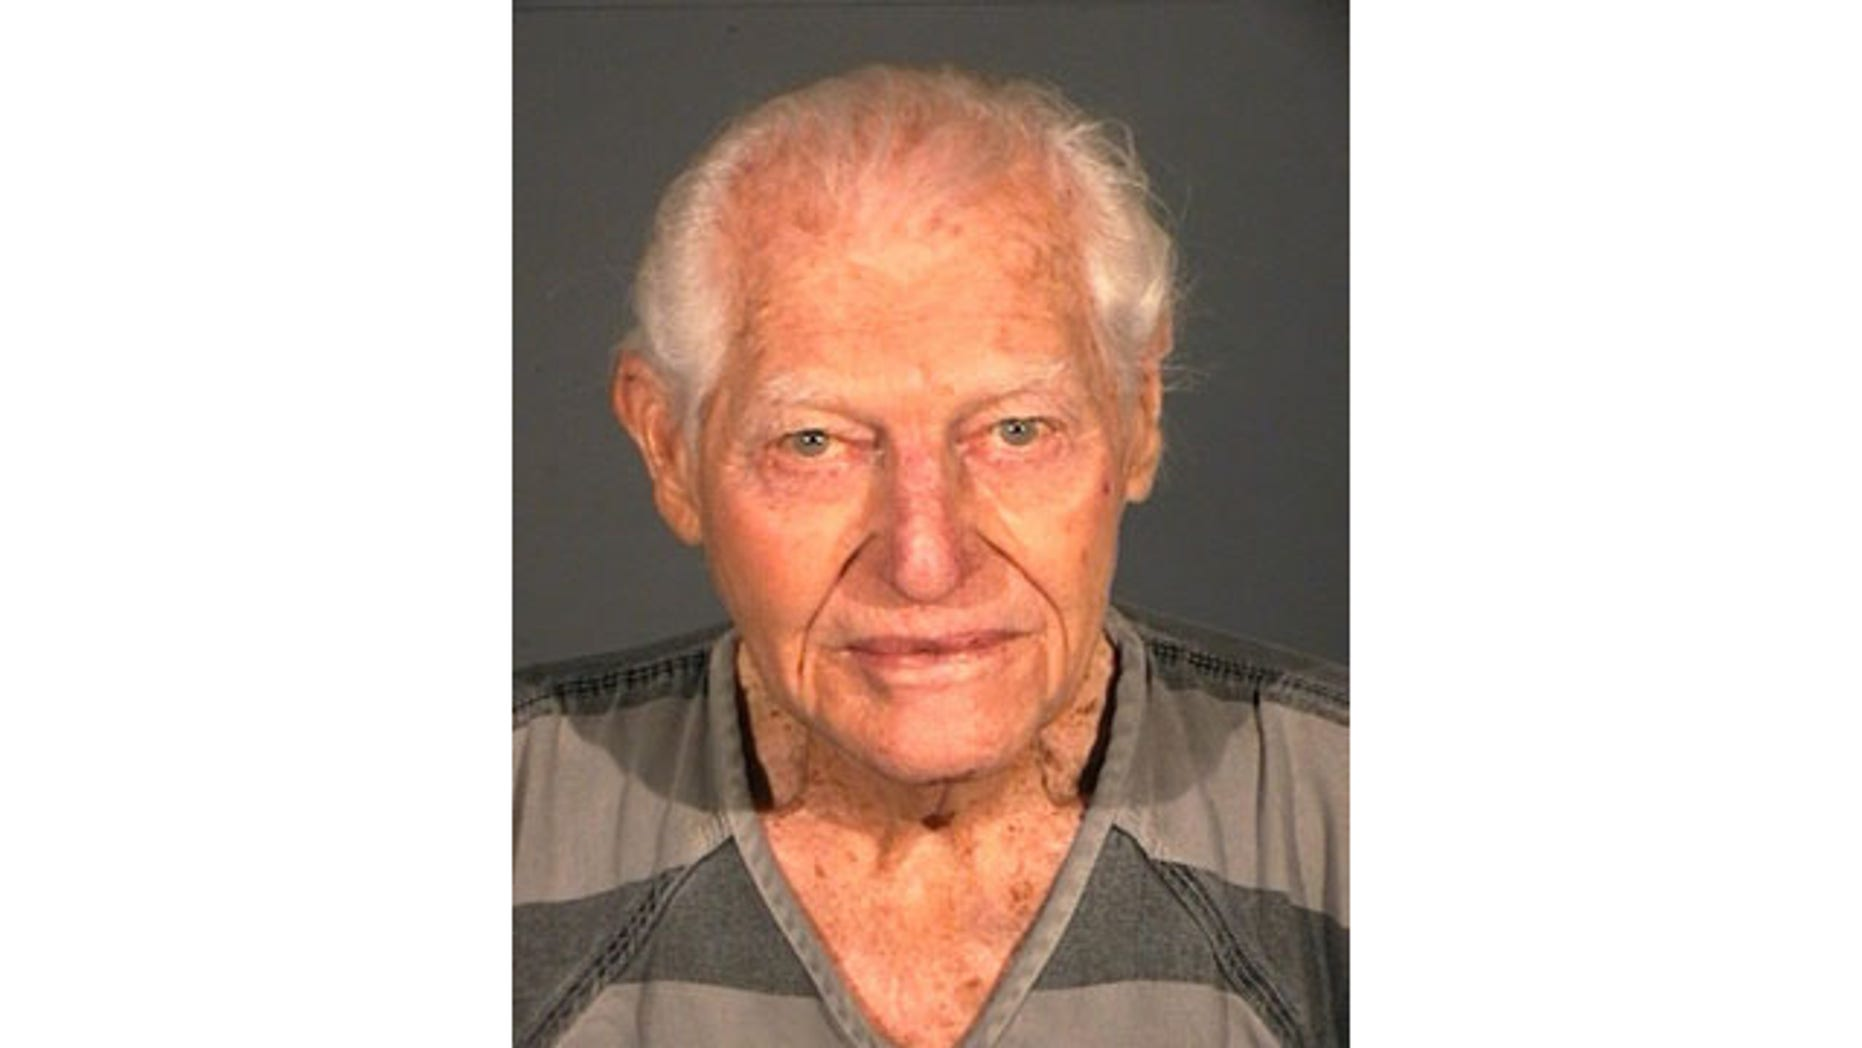 January 19, 2014: This photo provided by the Carson City Sheriff 's Department shows William Dresser, who was arrested Sunday after firing one shot with small-caliber semi-automatic handgun that struck his wife in the chest at Carson Tahoe Regional Medical Center in Carson City. (AP Photo/Carson City Sheriff Department)